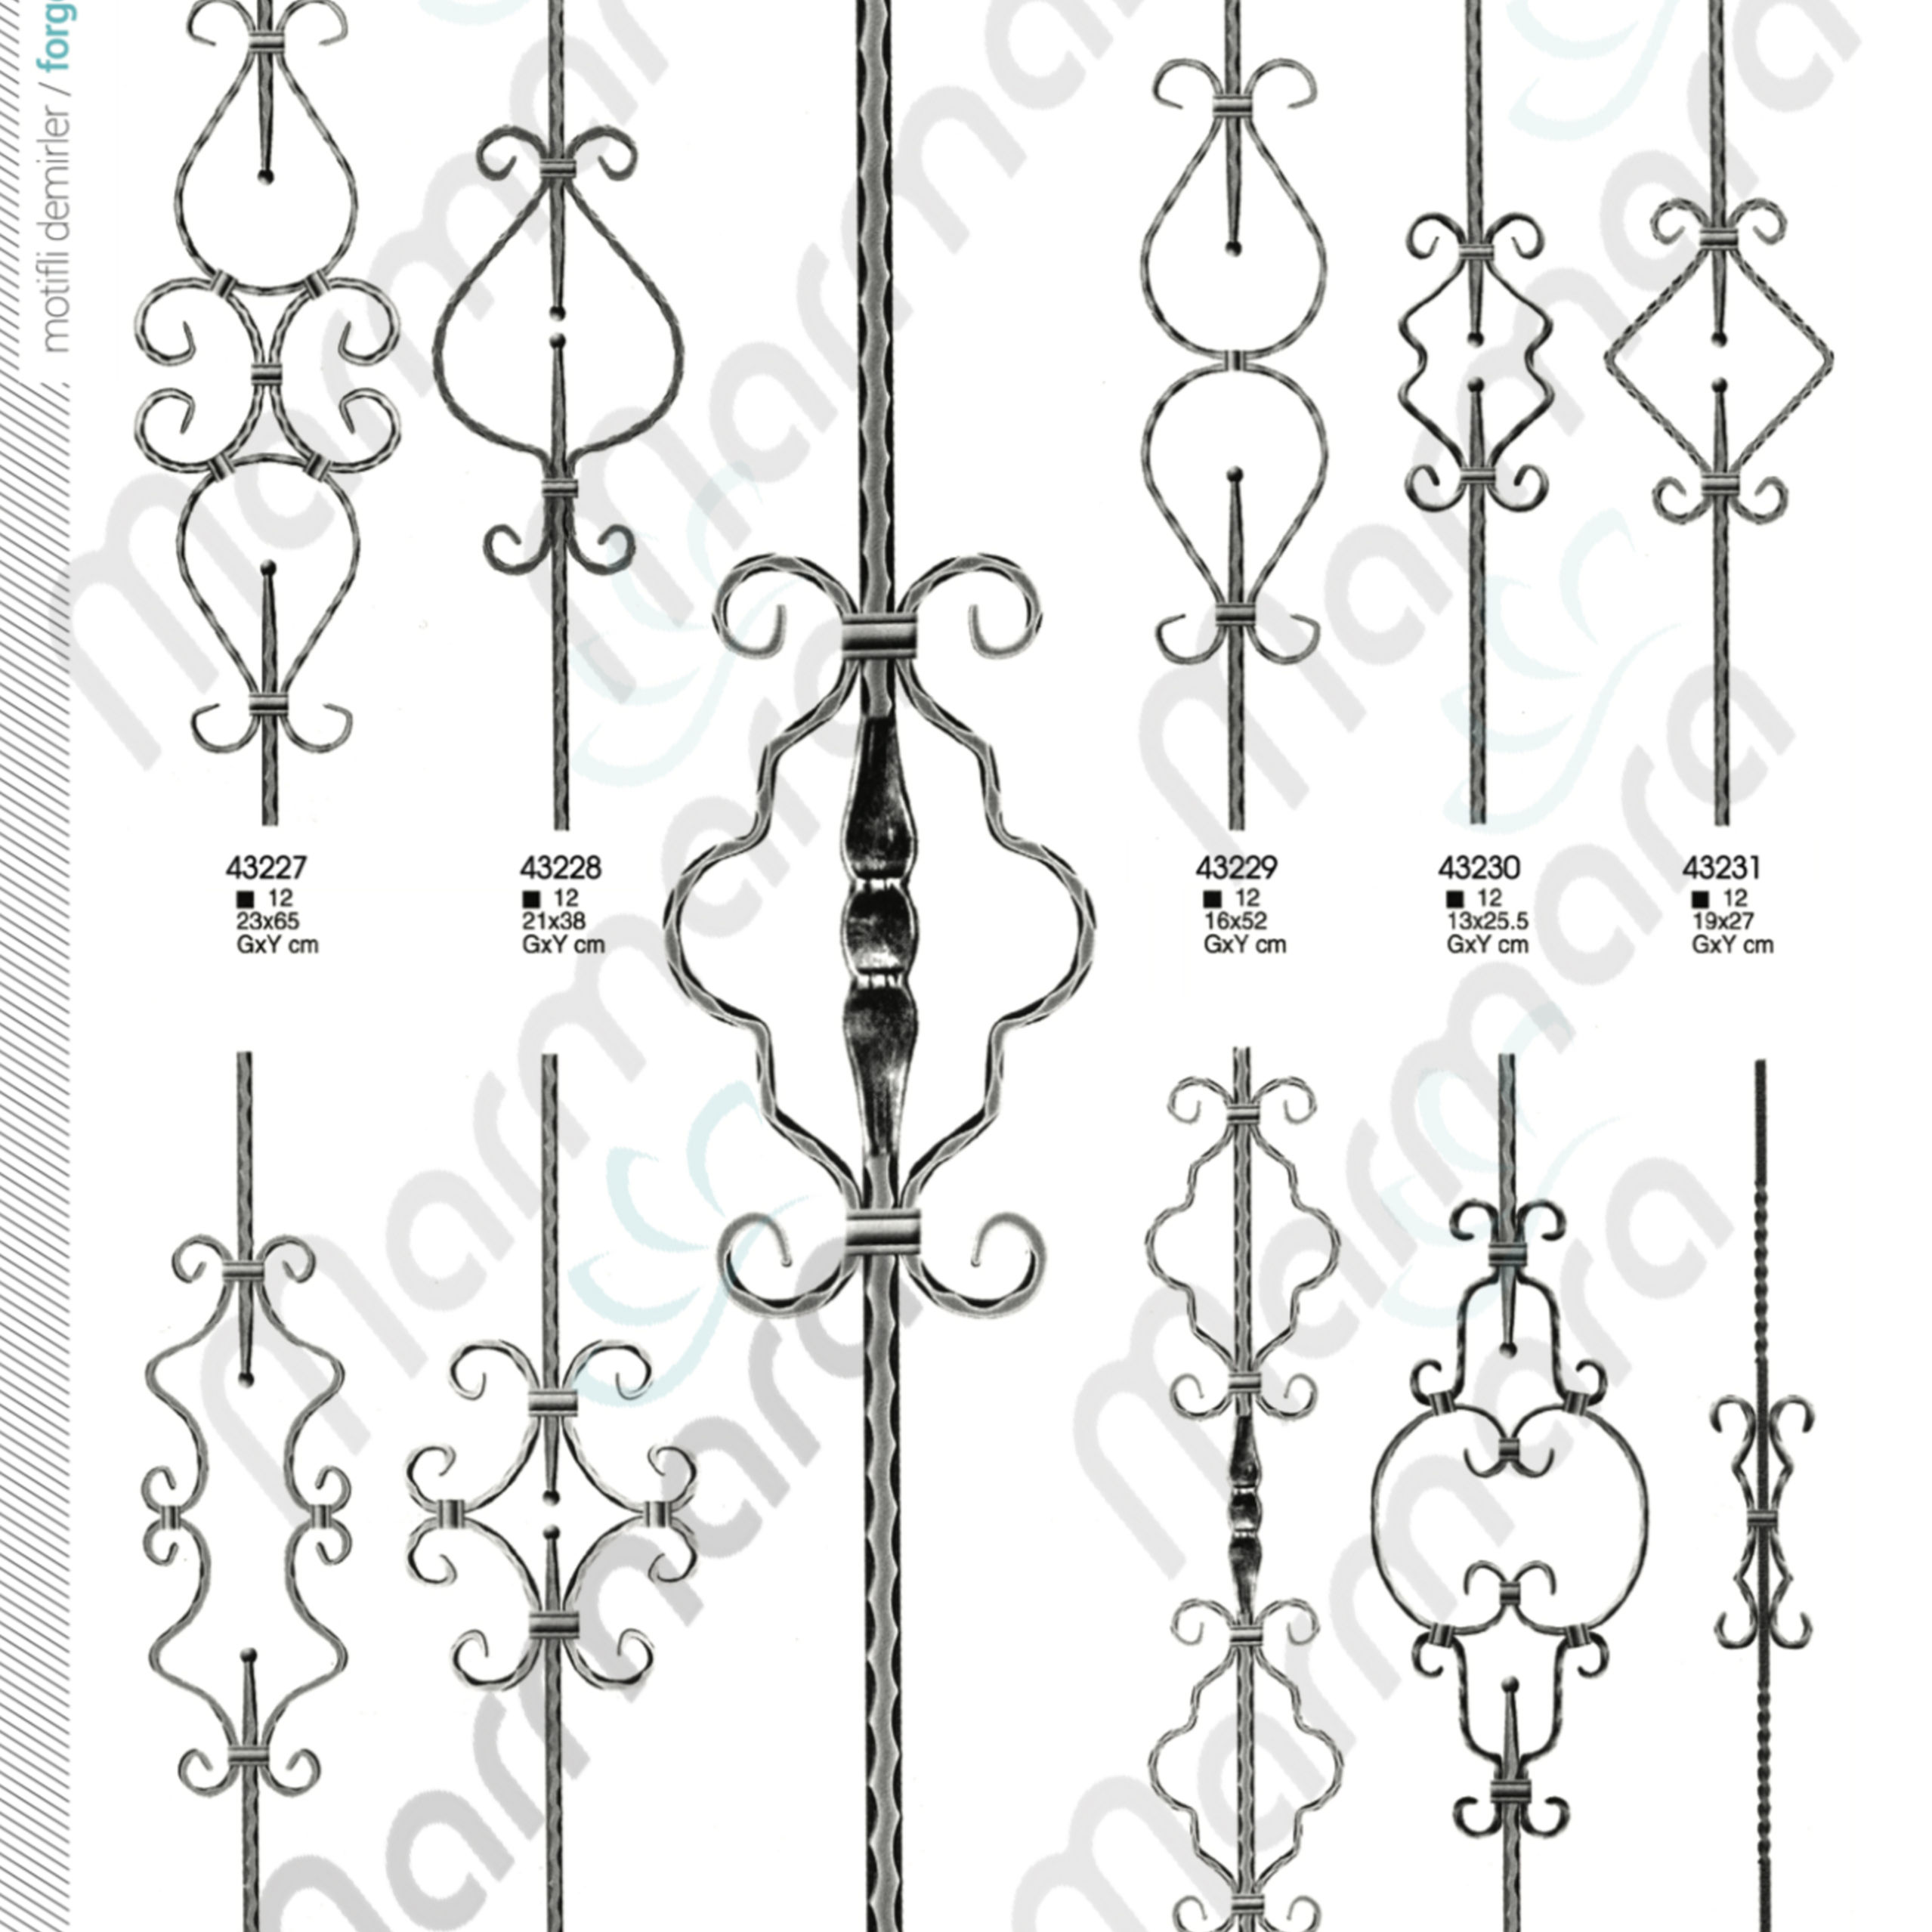 Best Quality Turkish Baluster - Wrought Iron component for stair